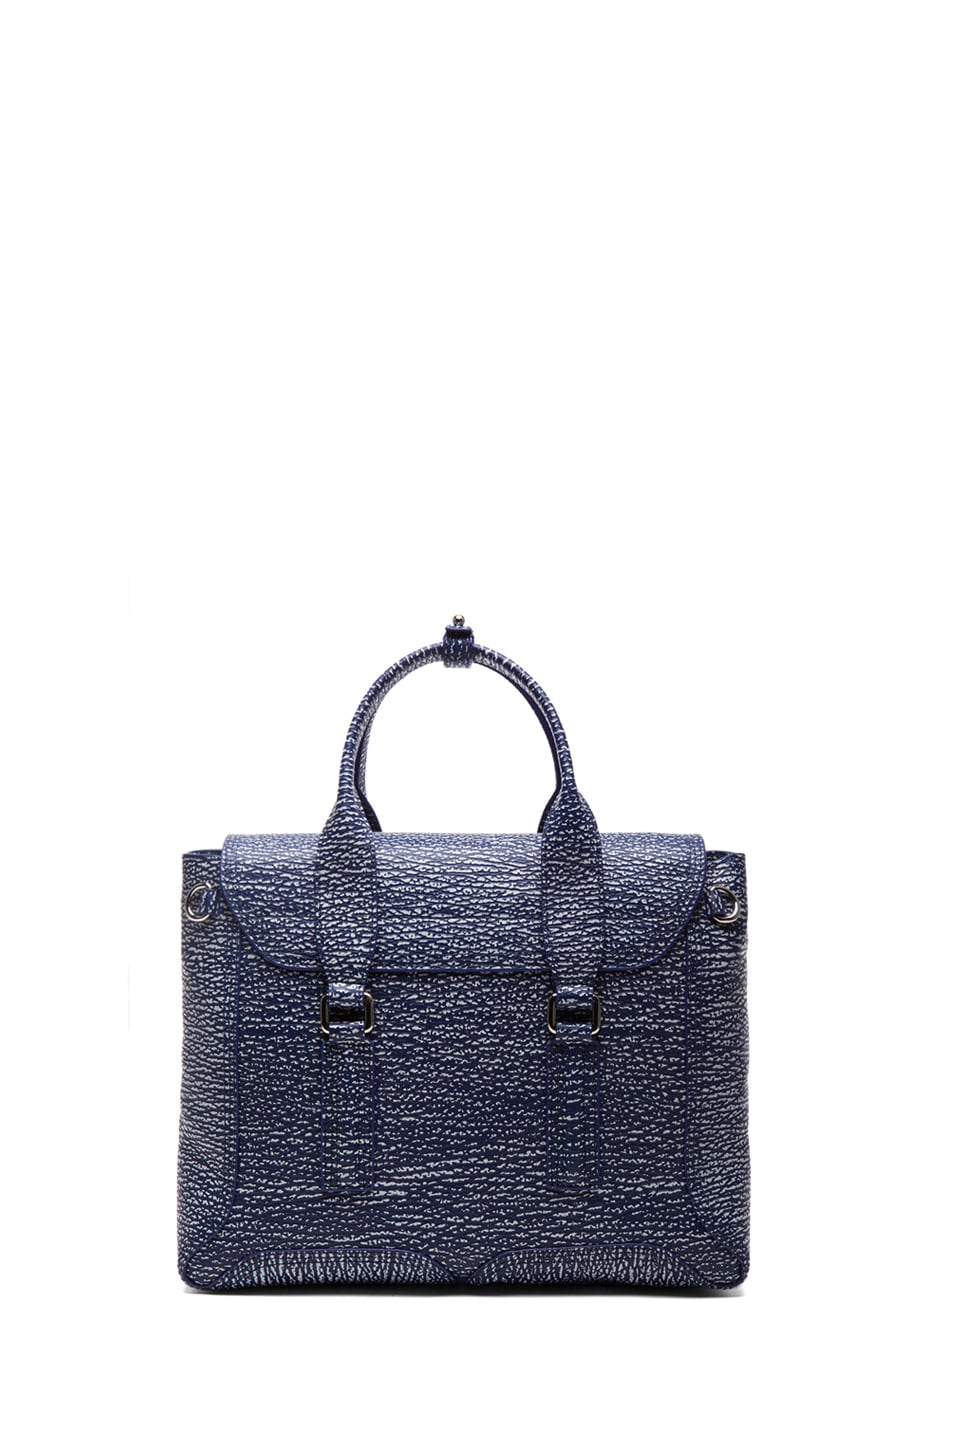 Image 2 of 3.1 phillip lim Medium Pashli Trapeze in Cobalt & Antique White